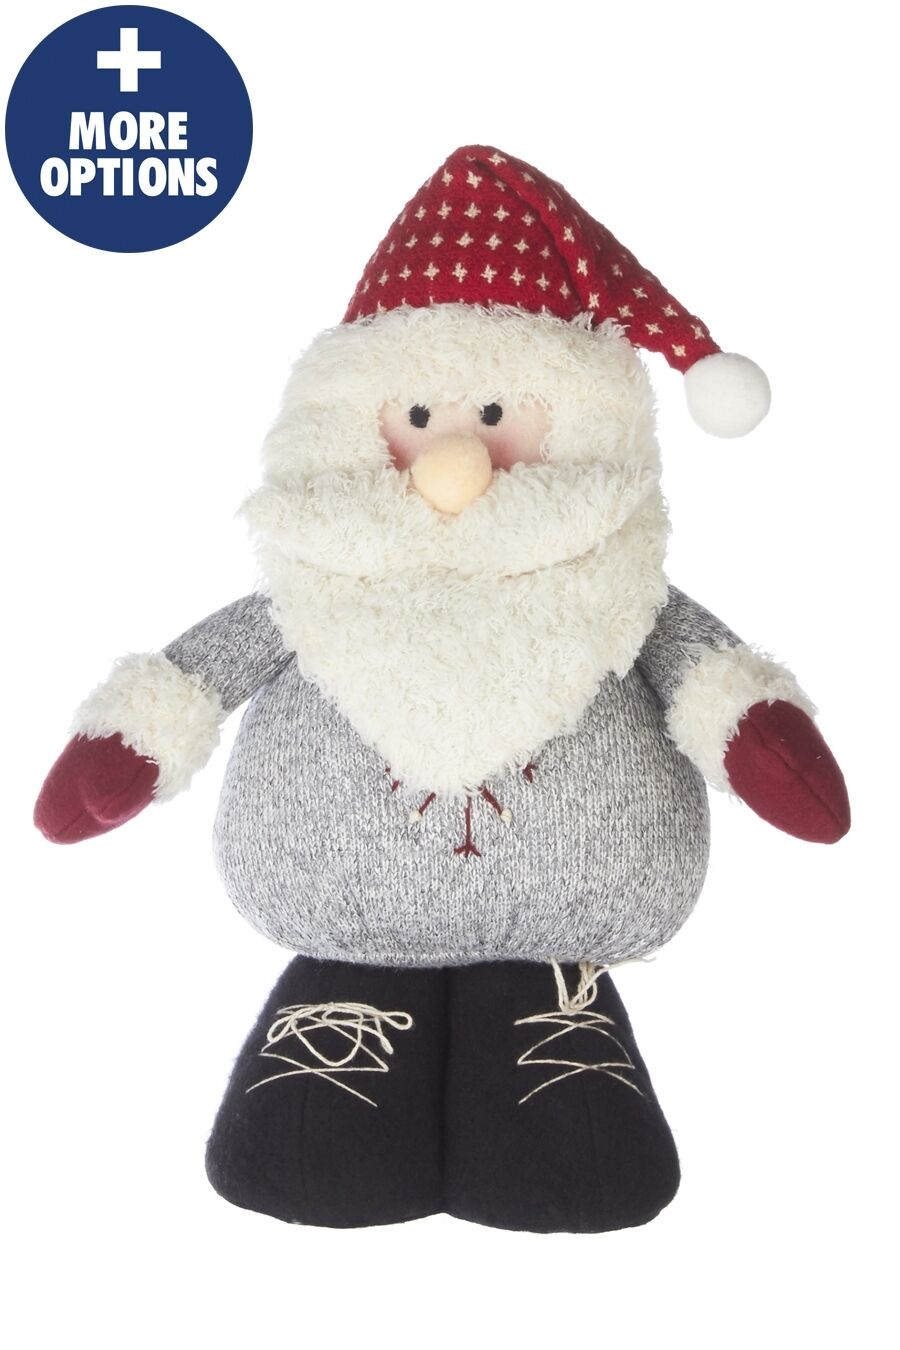 free standing snowman santa figure teddy father christmas decoration 1 of 1 see more